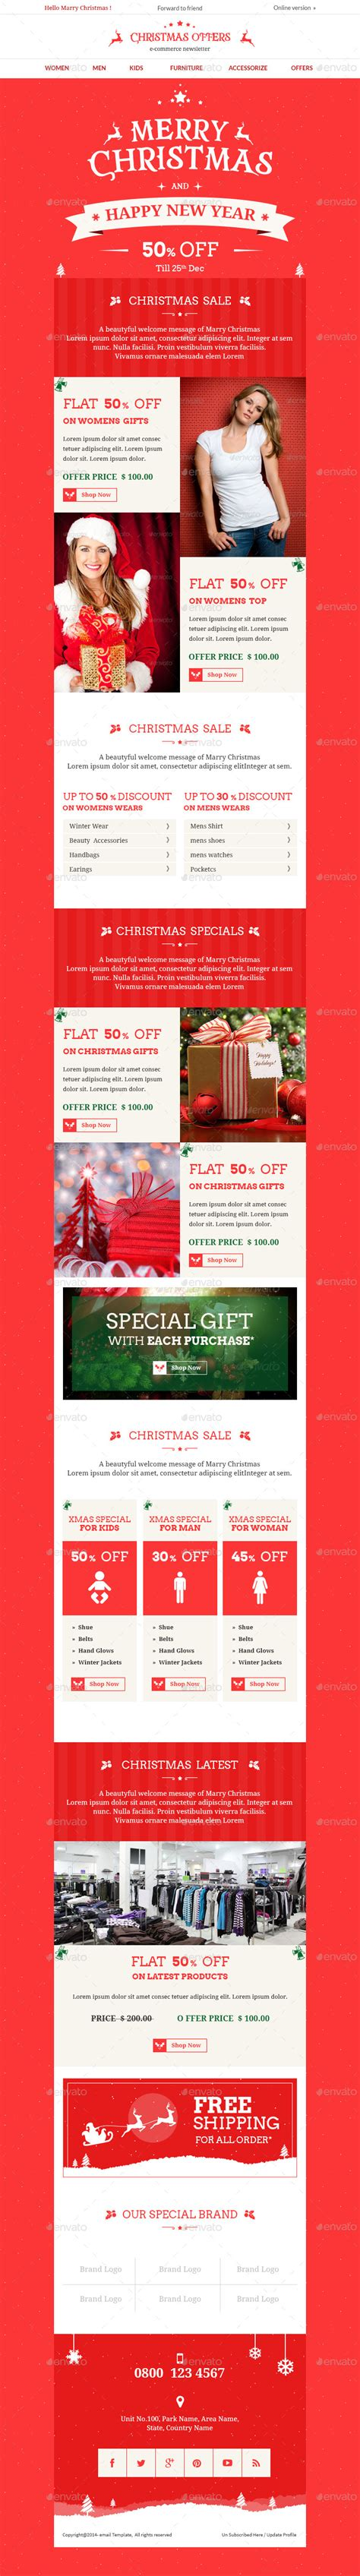 photoshop template offer christmas offers e commerce e newsletter psd template by